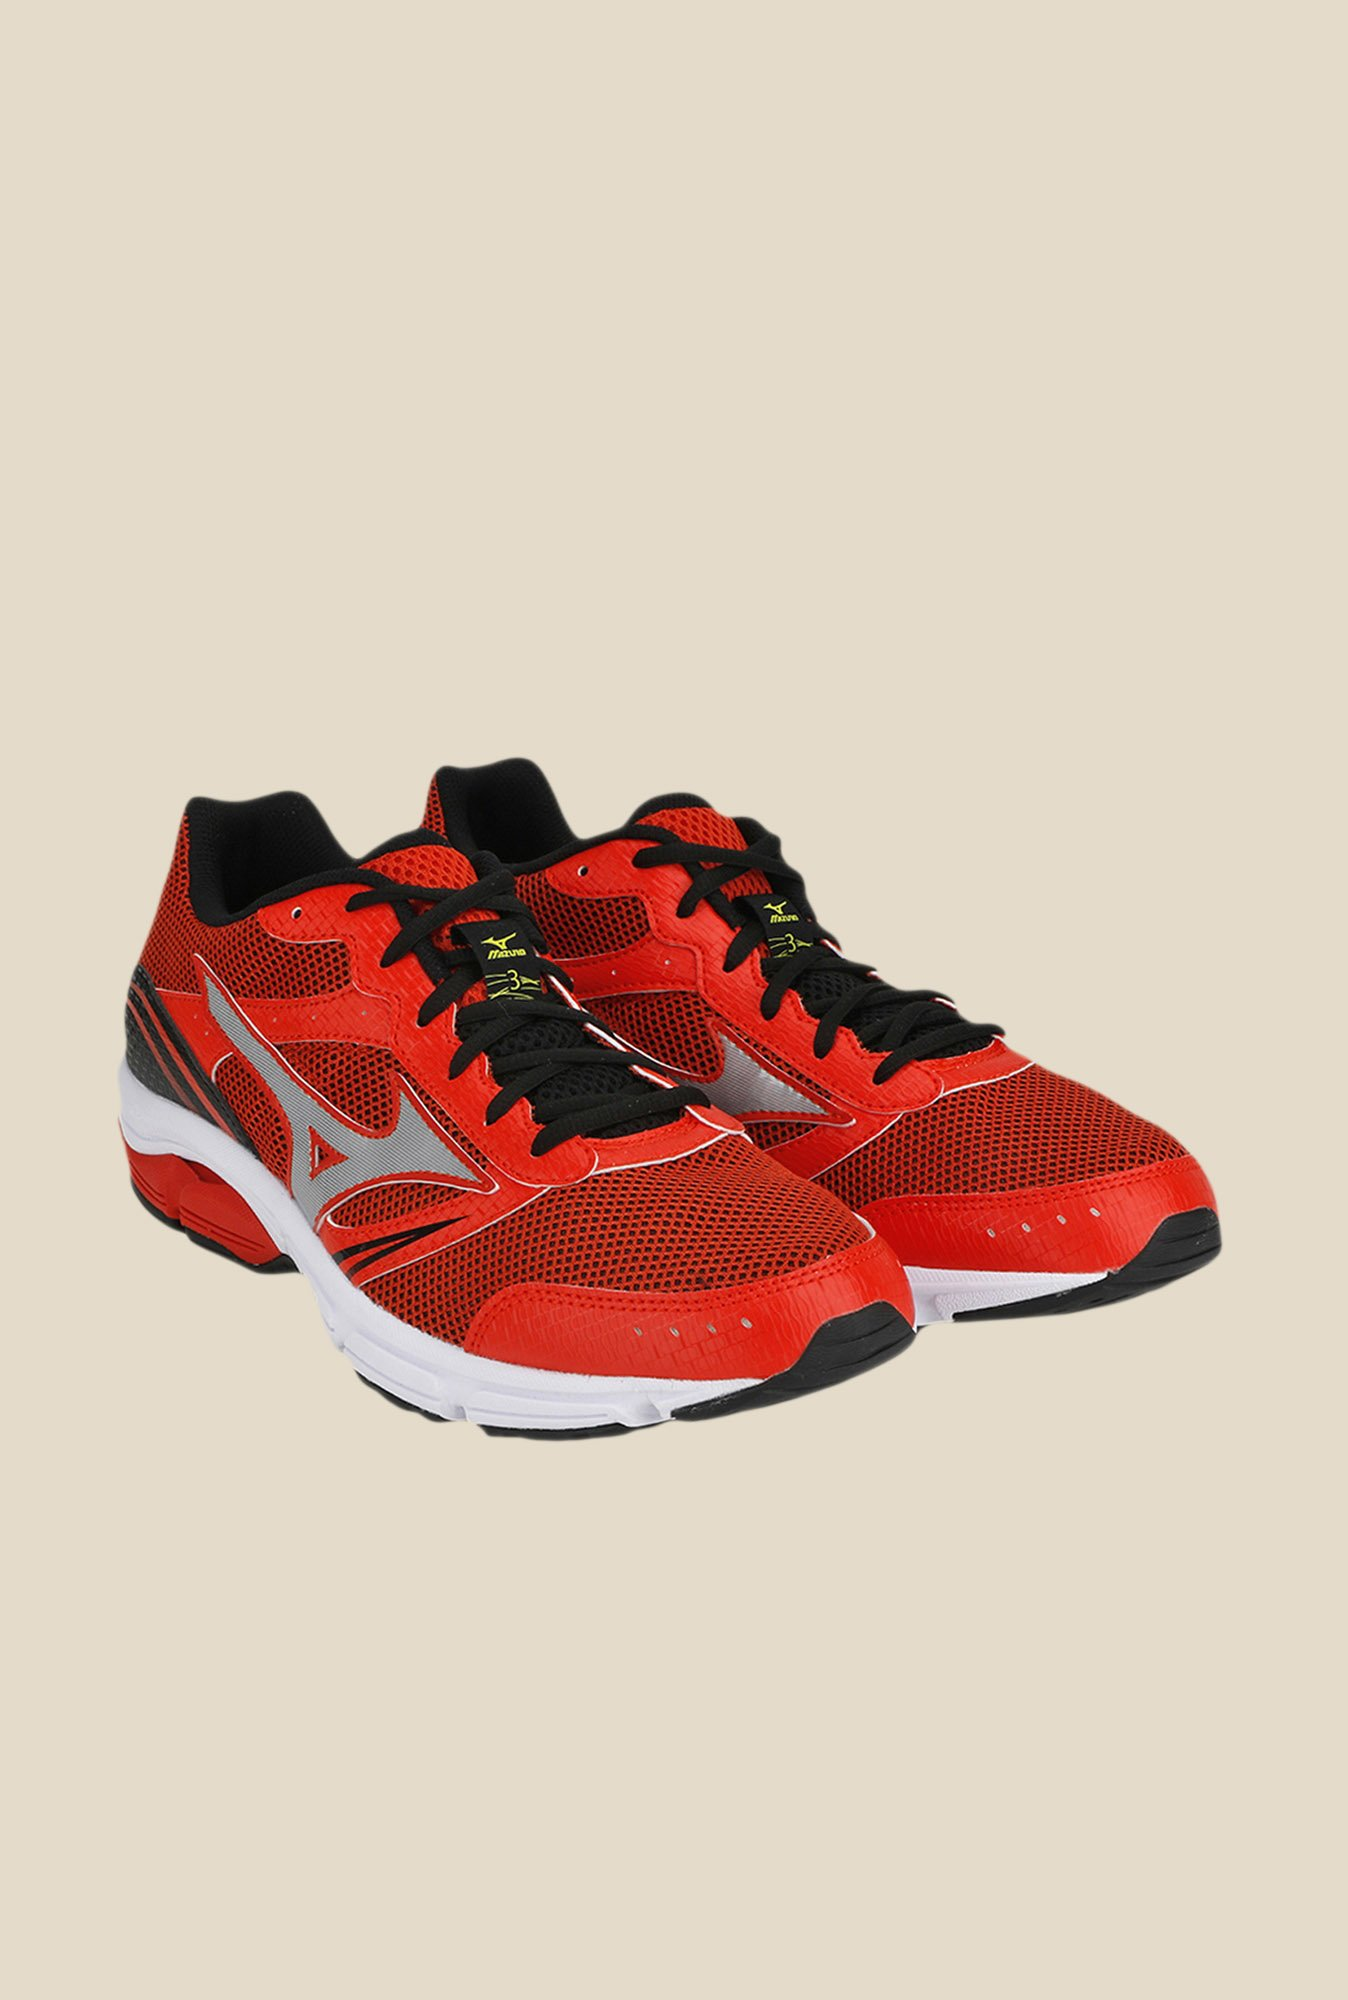 Mizuno Wave Impetus 3 Red & Black Running Shoes